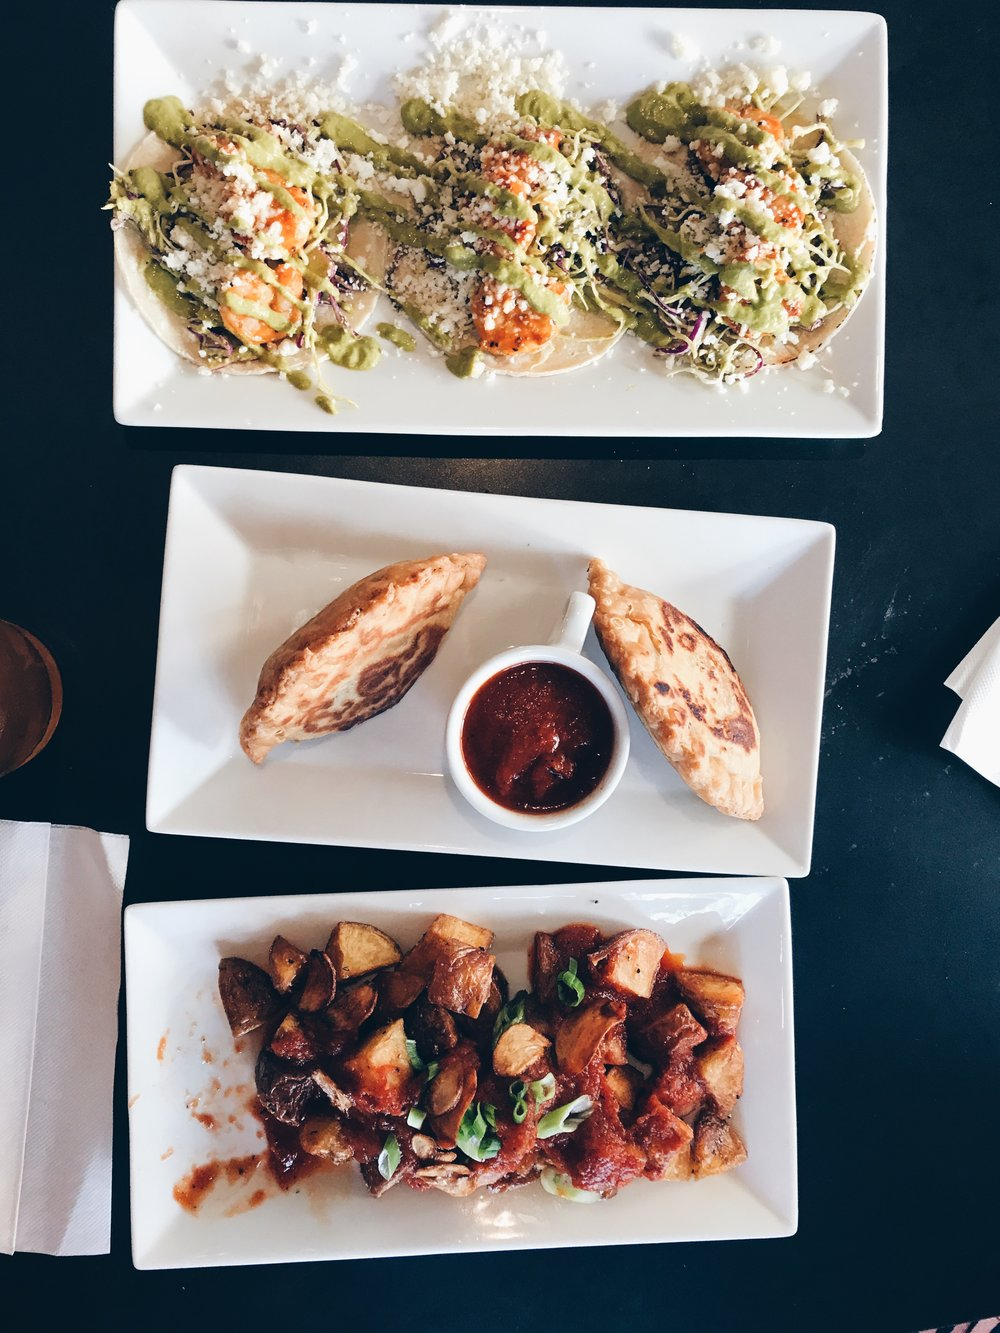 Top to bottom: Spicy Shrimp Tacos, Beef and Chicken Empanadas, Patatas Bravas